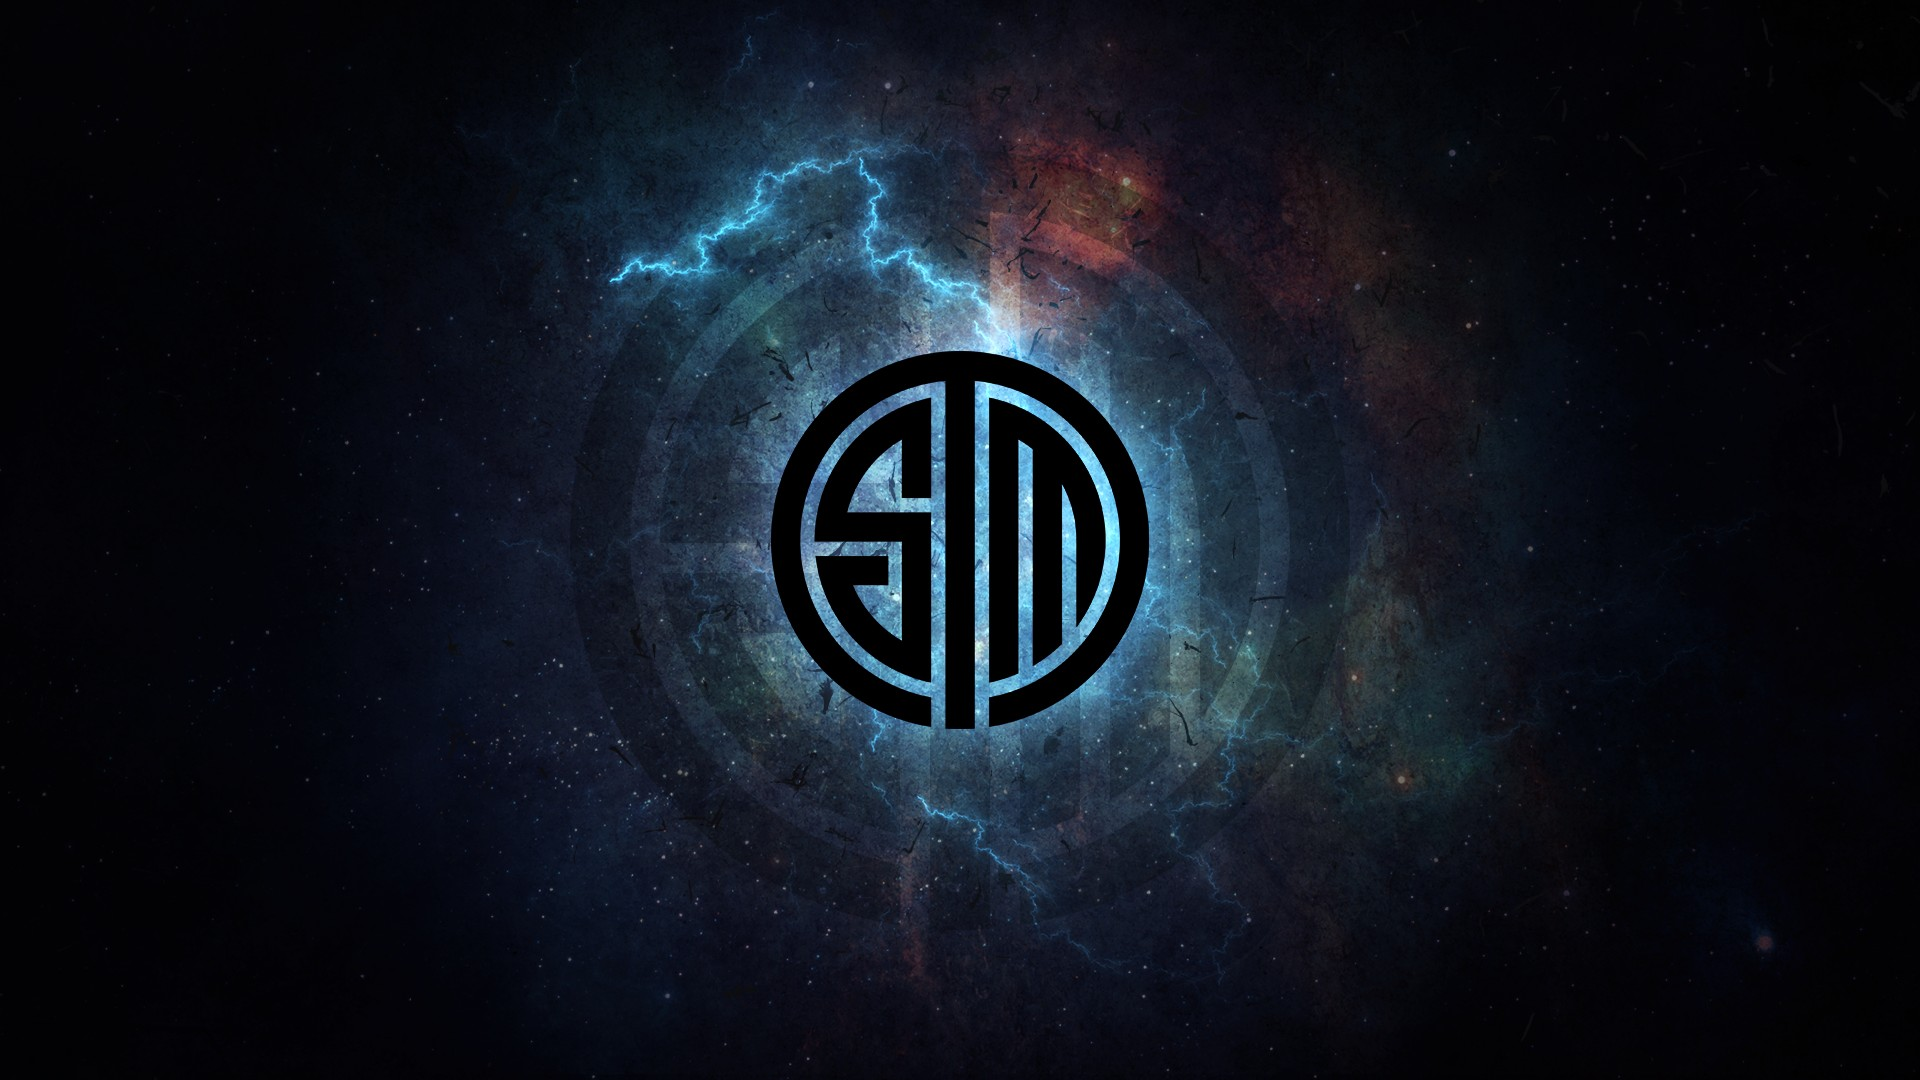 Tsm Wallpaper 183 ① Download Free Awesome Full Hd Wallpapers